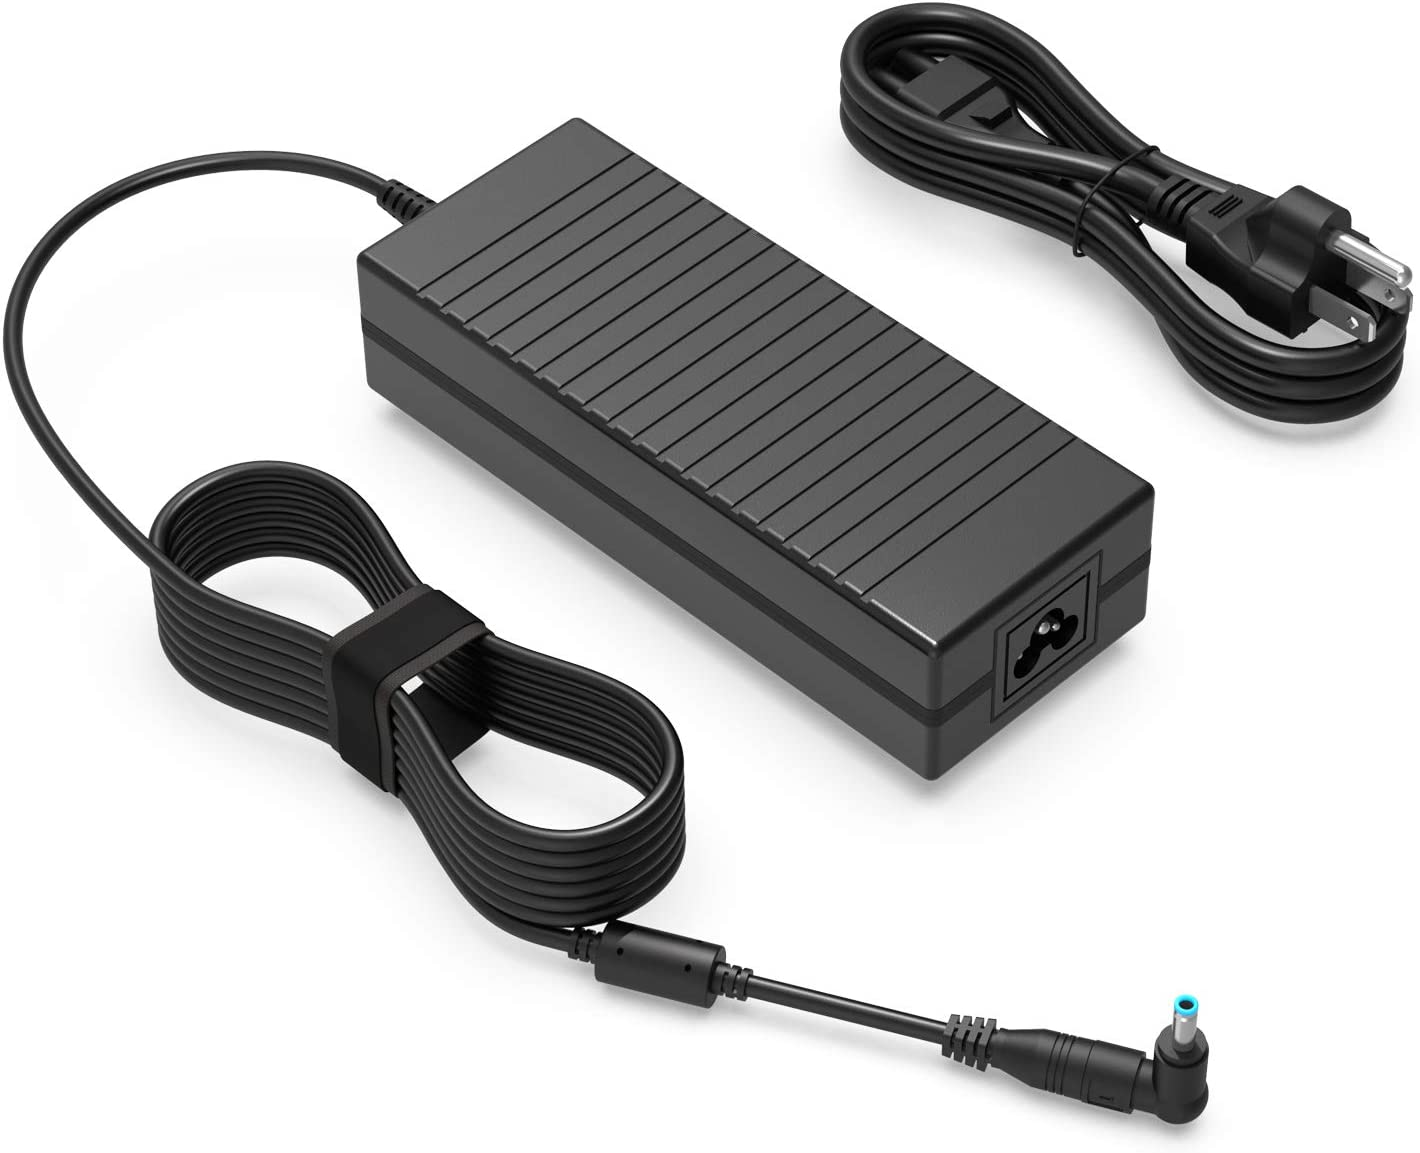 150W Power Supply Charger Fit for HP OMEN x by 15 17 ZBook Studio 15 G2 G3 G4 G5 G6 ADP-150XB B 776620-001 917677-003 917677-001 740243-001 15-dk0068wm Laptop Adapter Cord 19.5V 7.7A 150 Watt